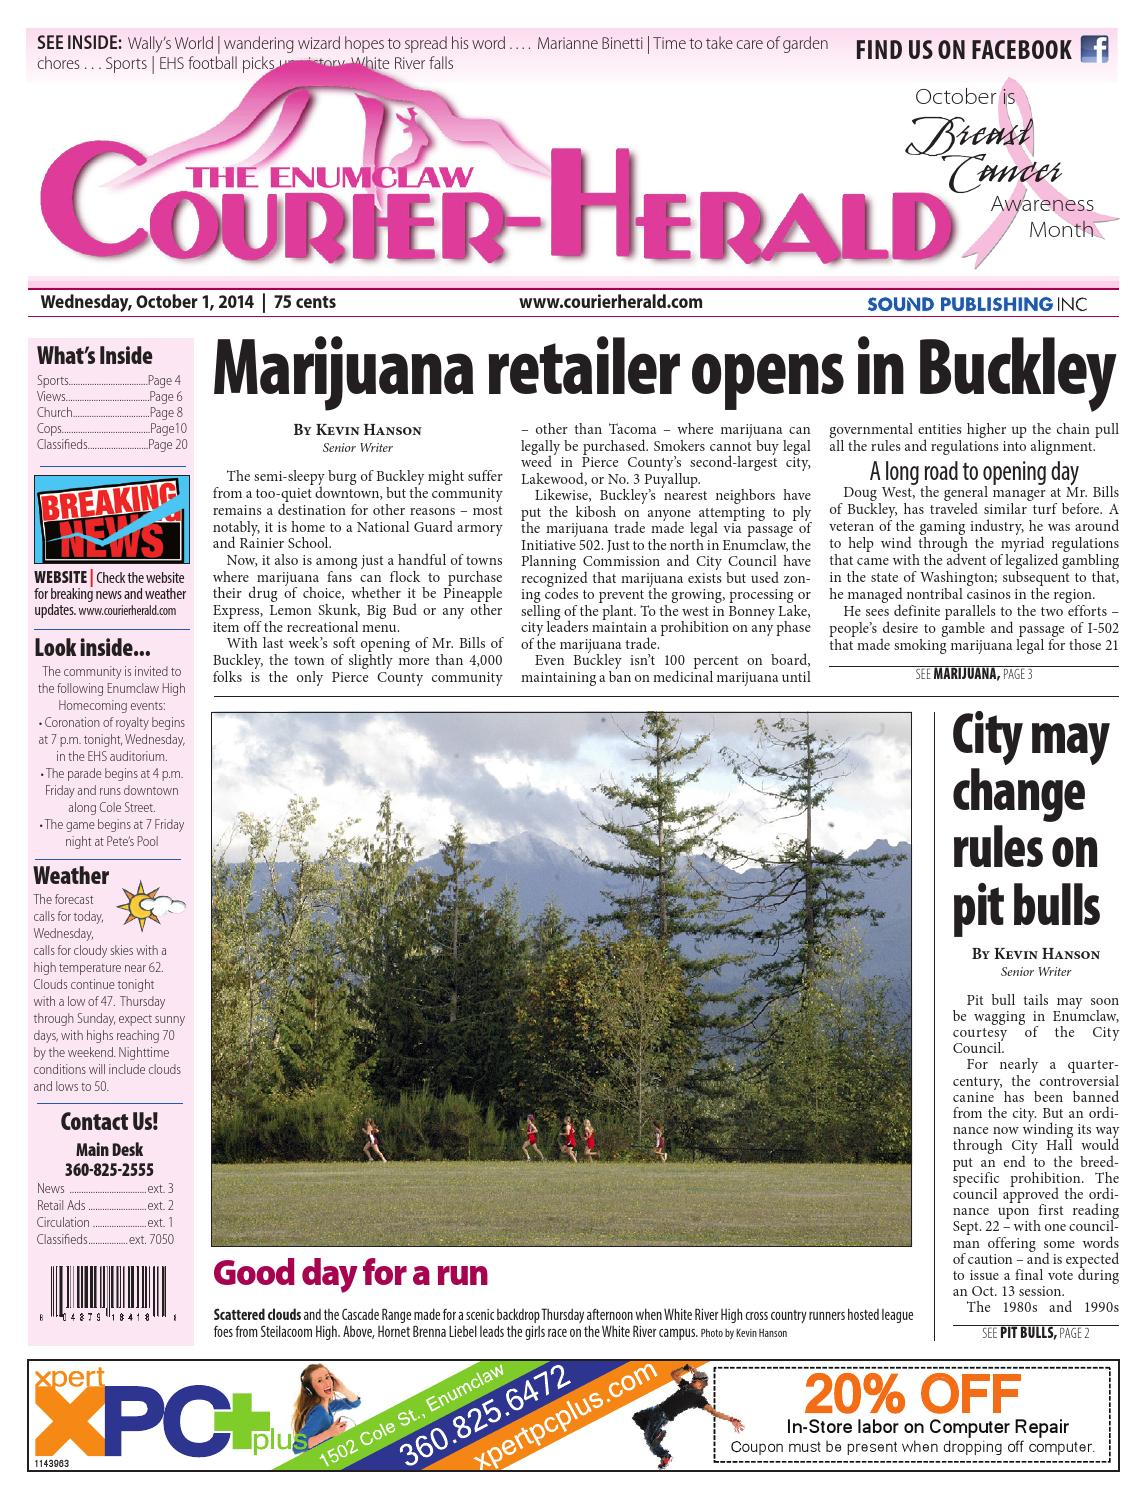 Enumclaw Courier-Herald ad2f7d8a15